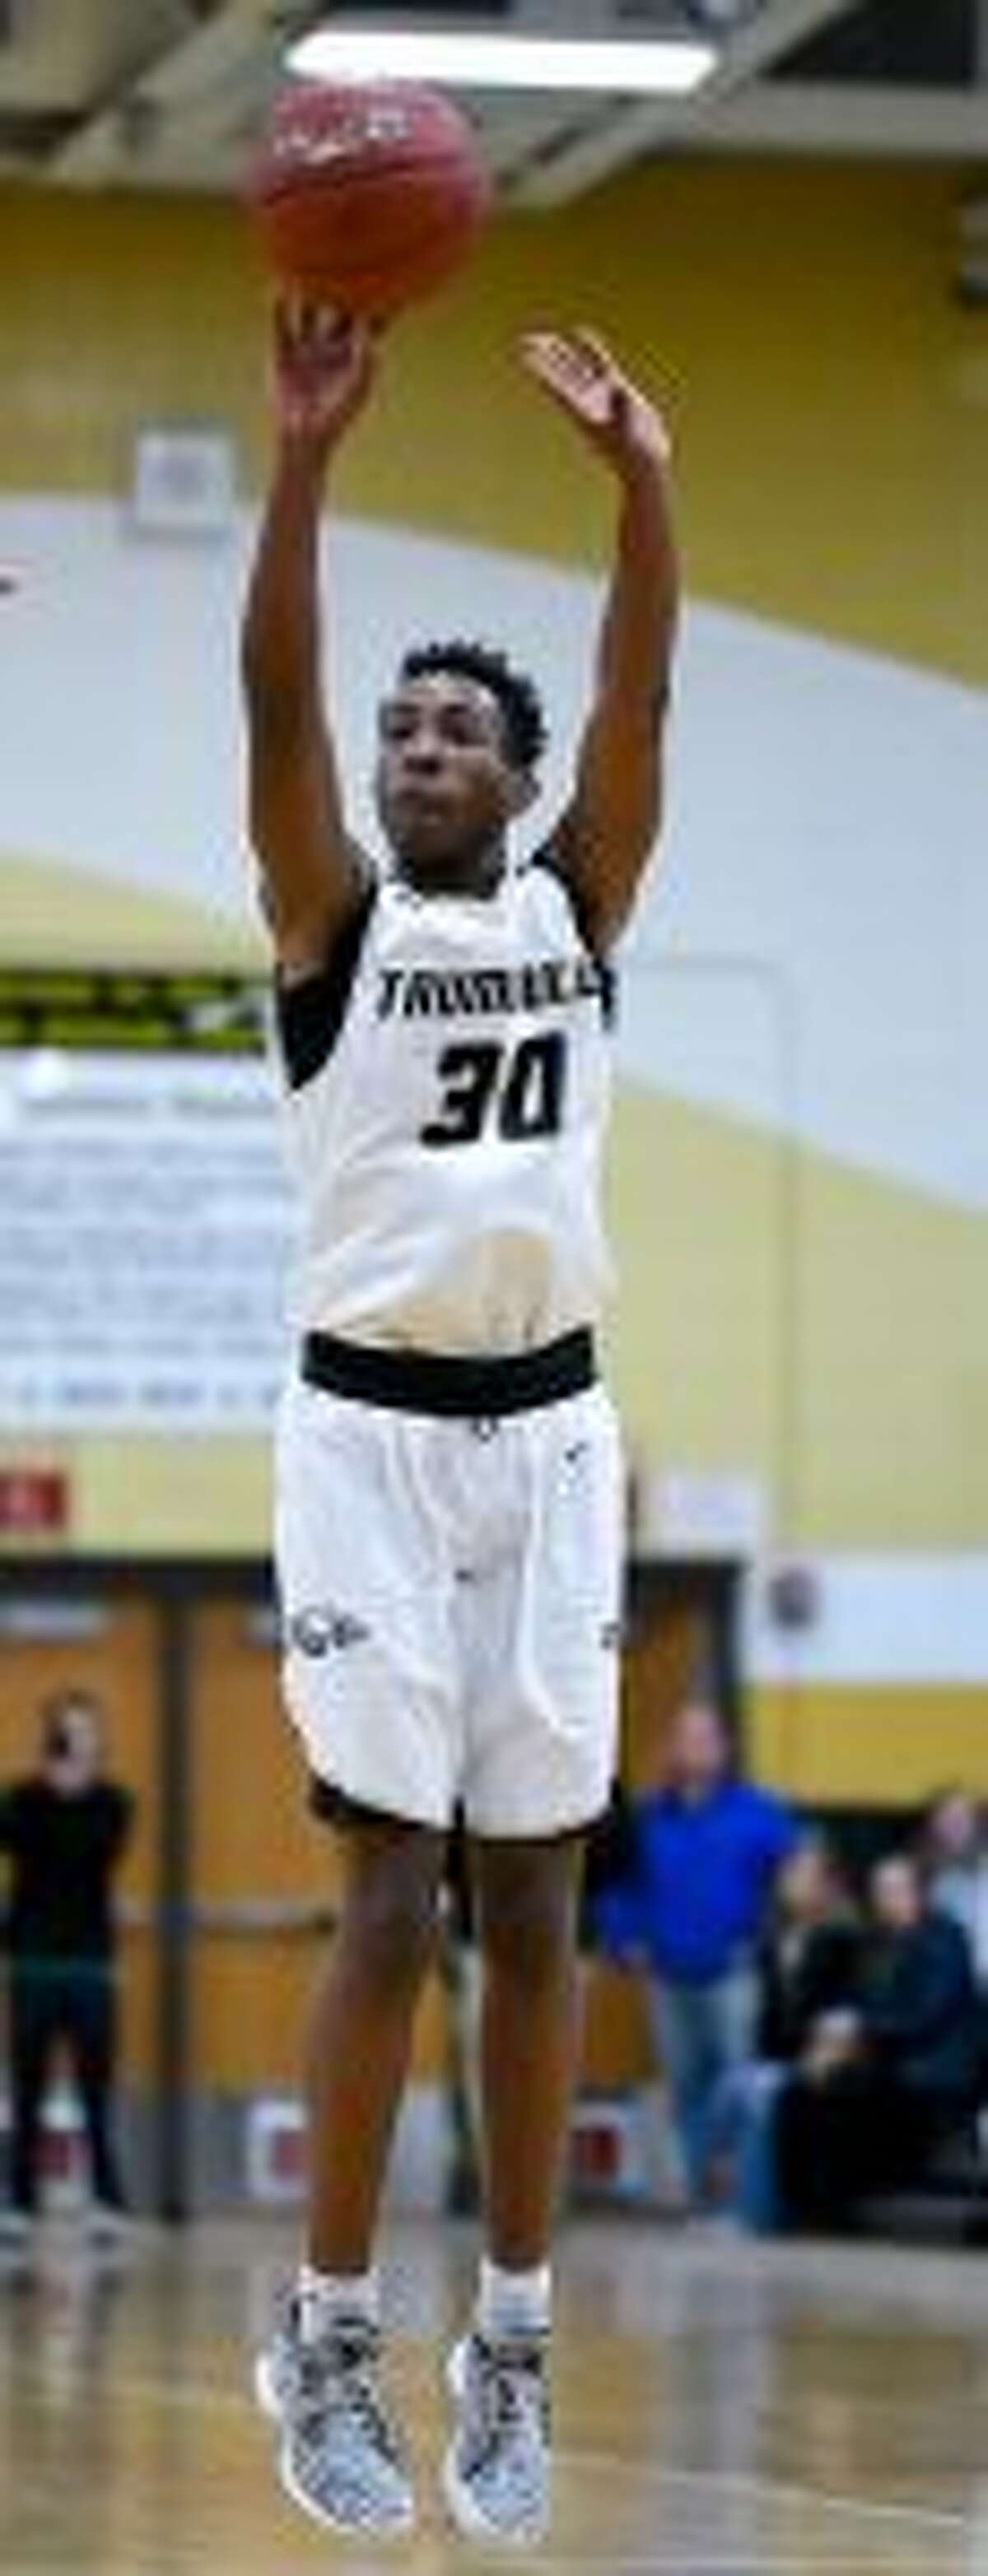 Timmond Williams matched his number with a 30-point performance. - David G. Whitham photos